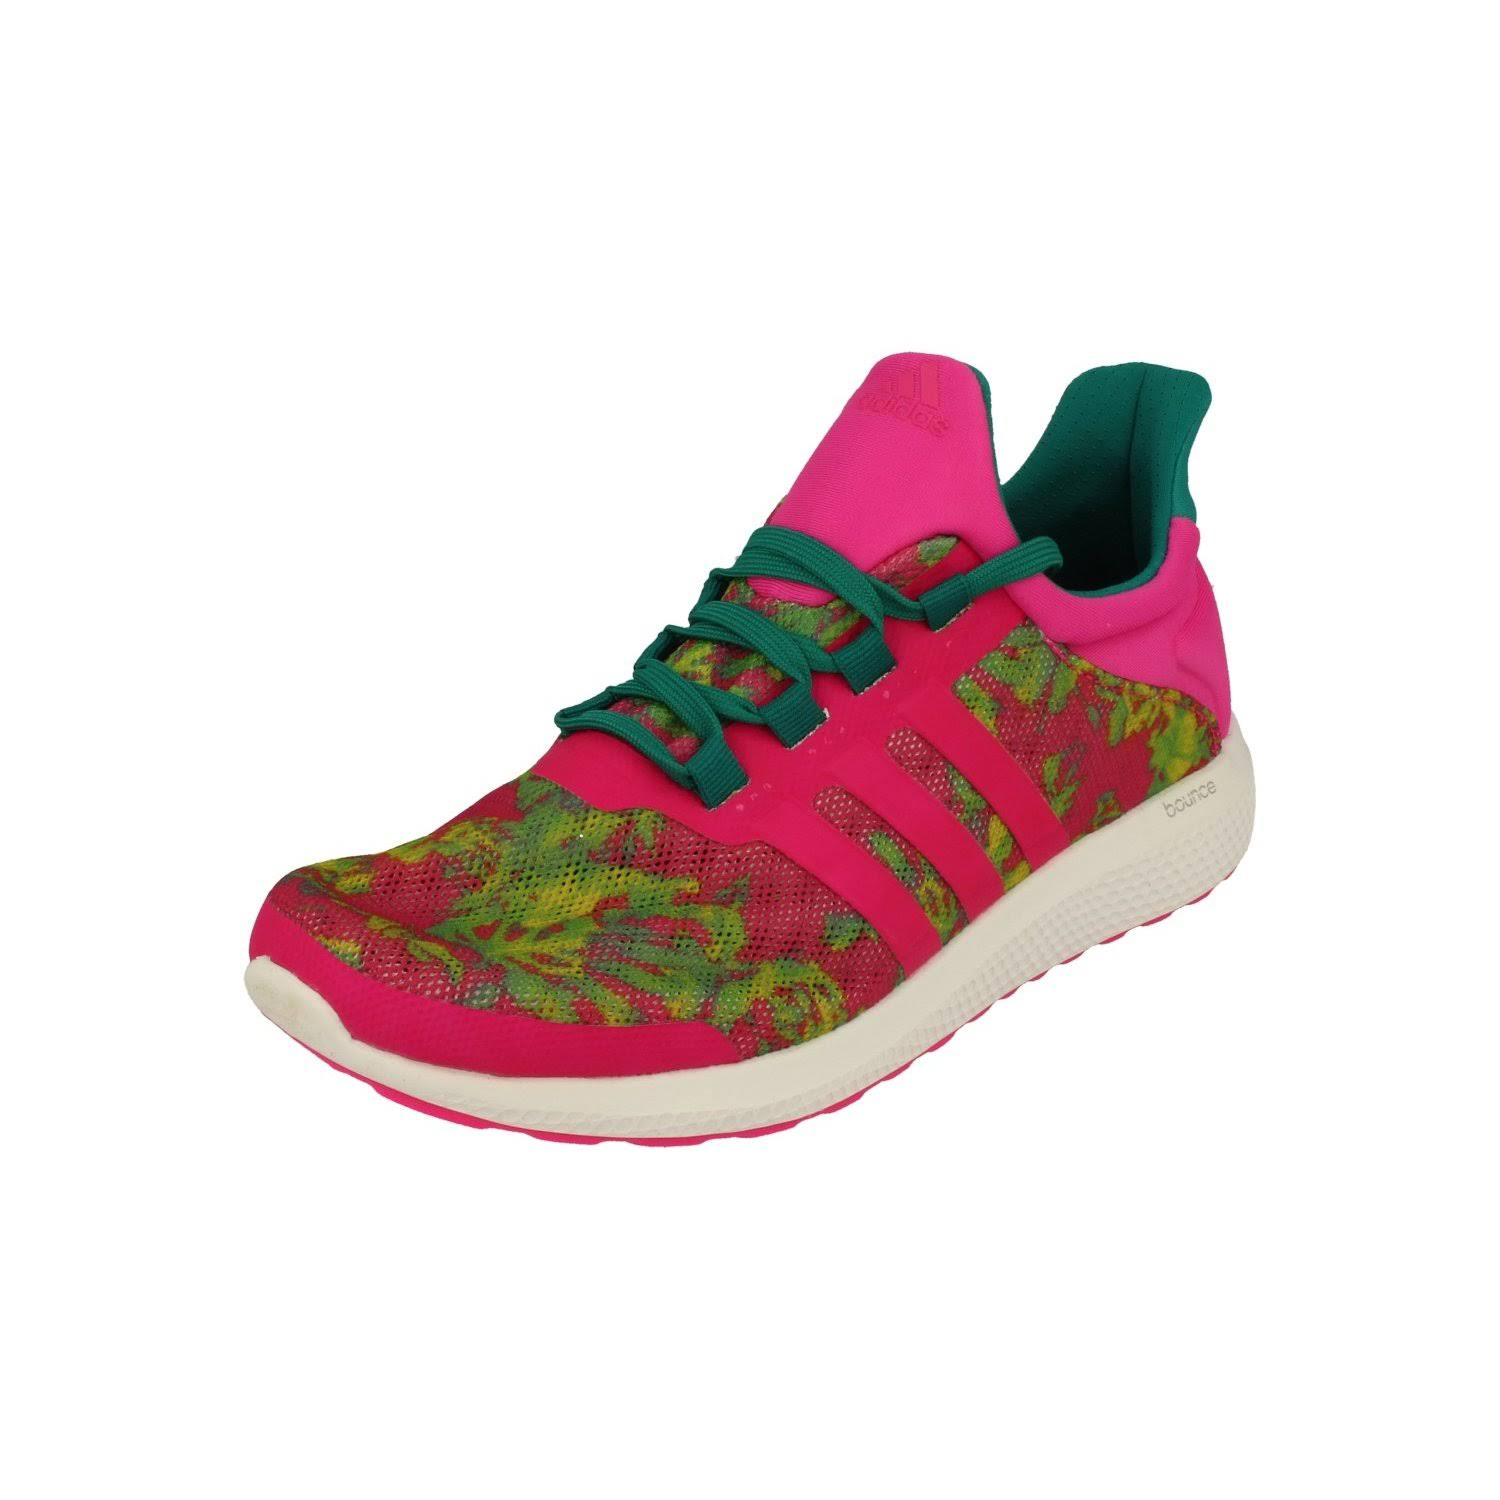 (5) Adidas Cc Sonic Womens Running Trainers Shoes